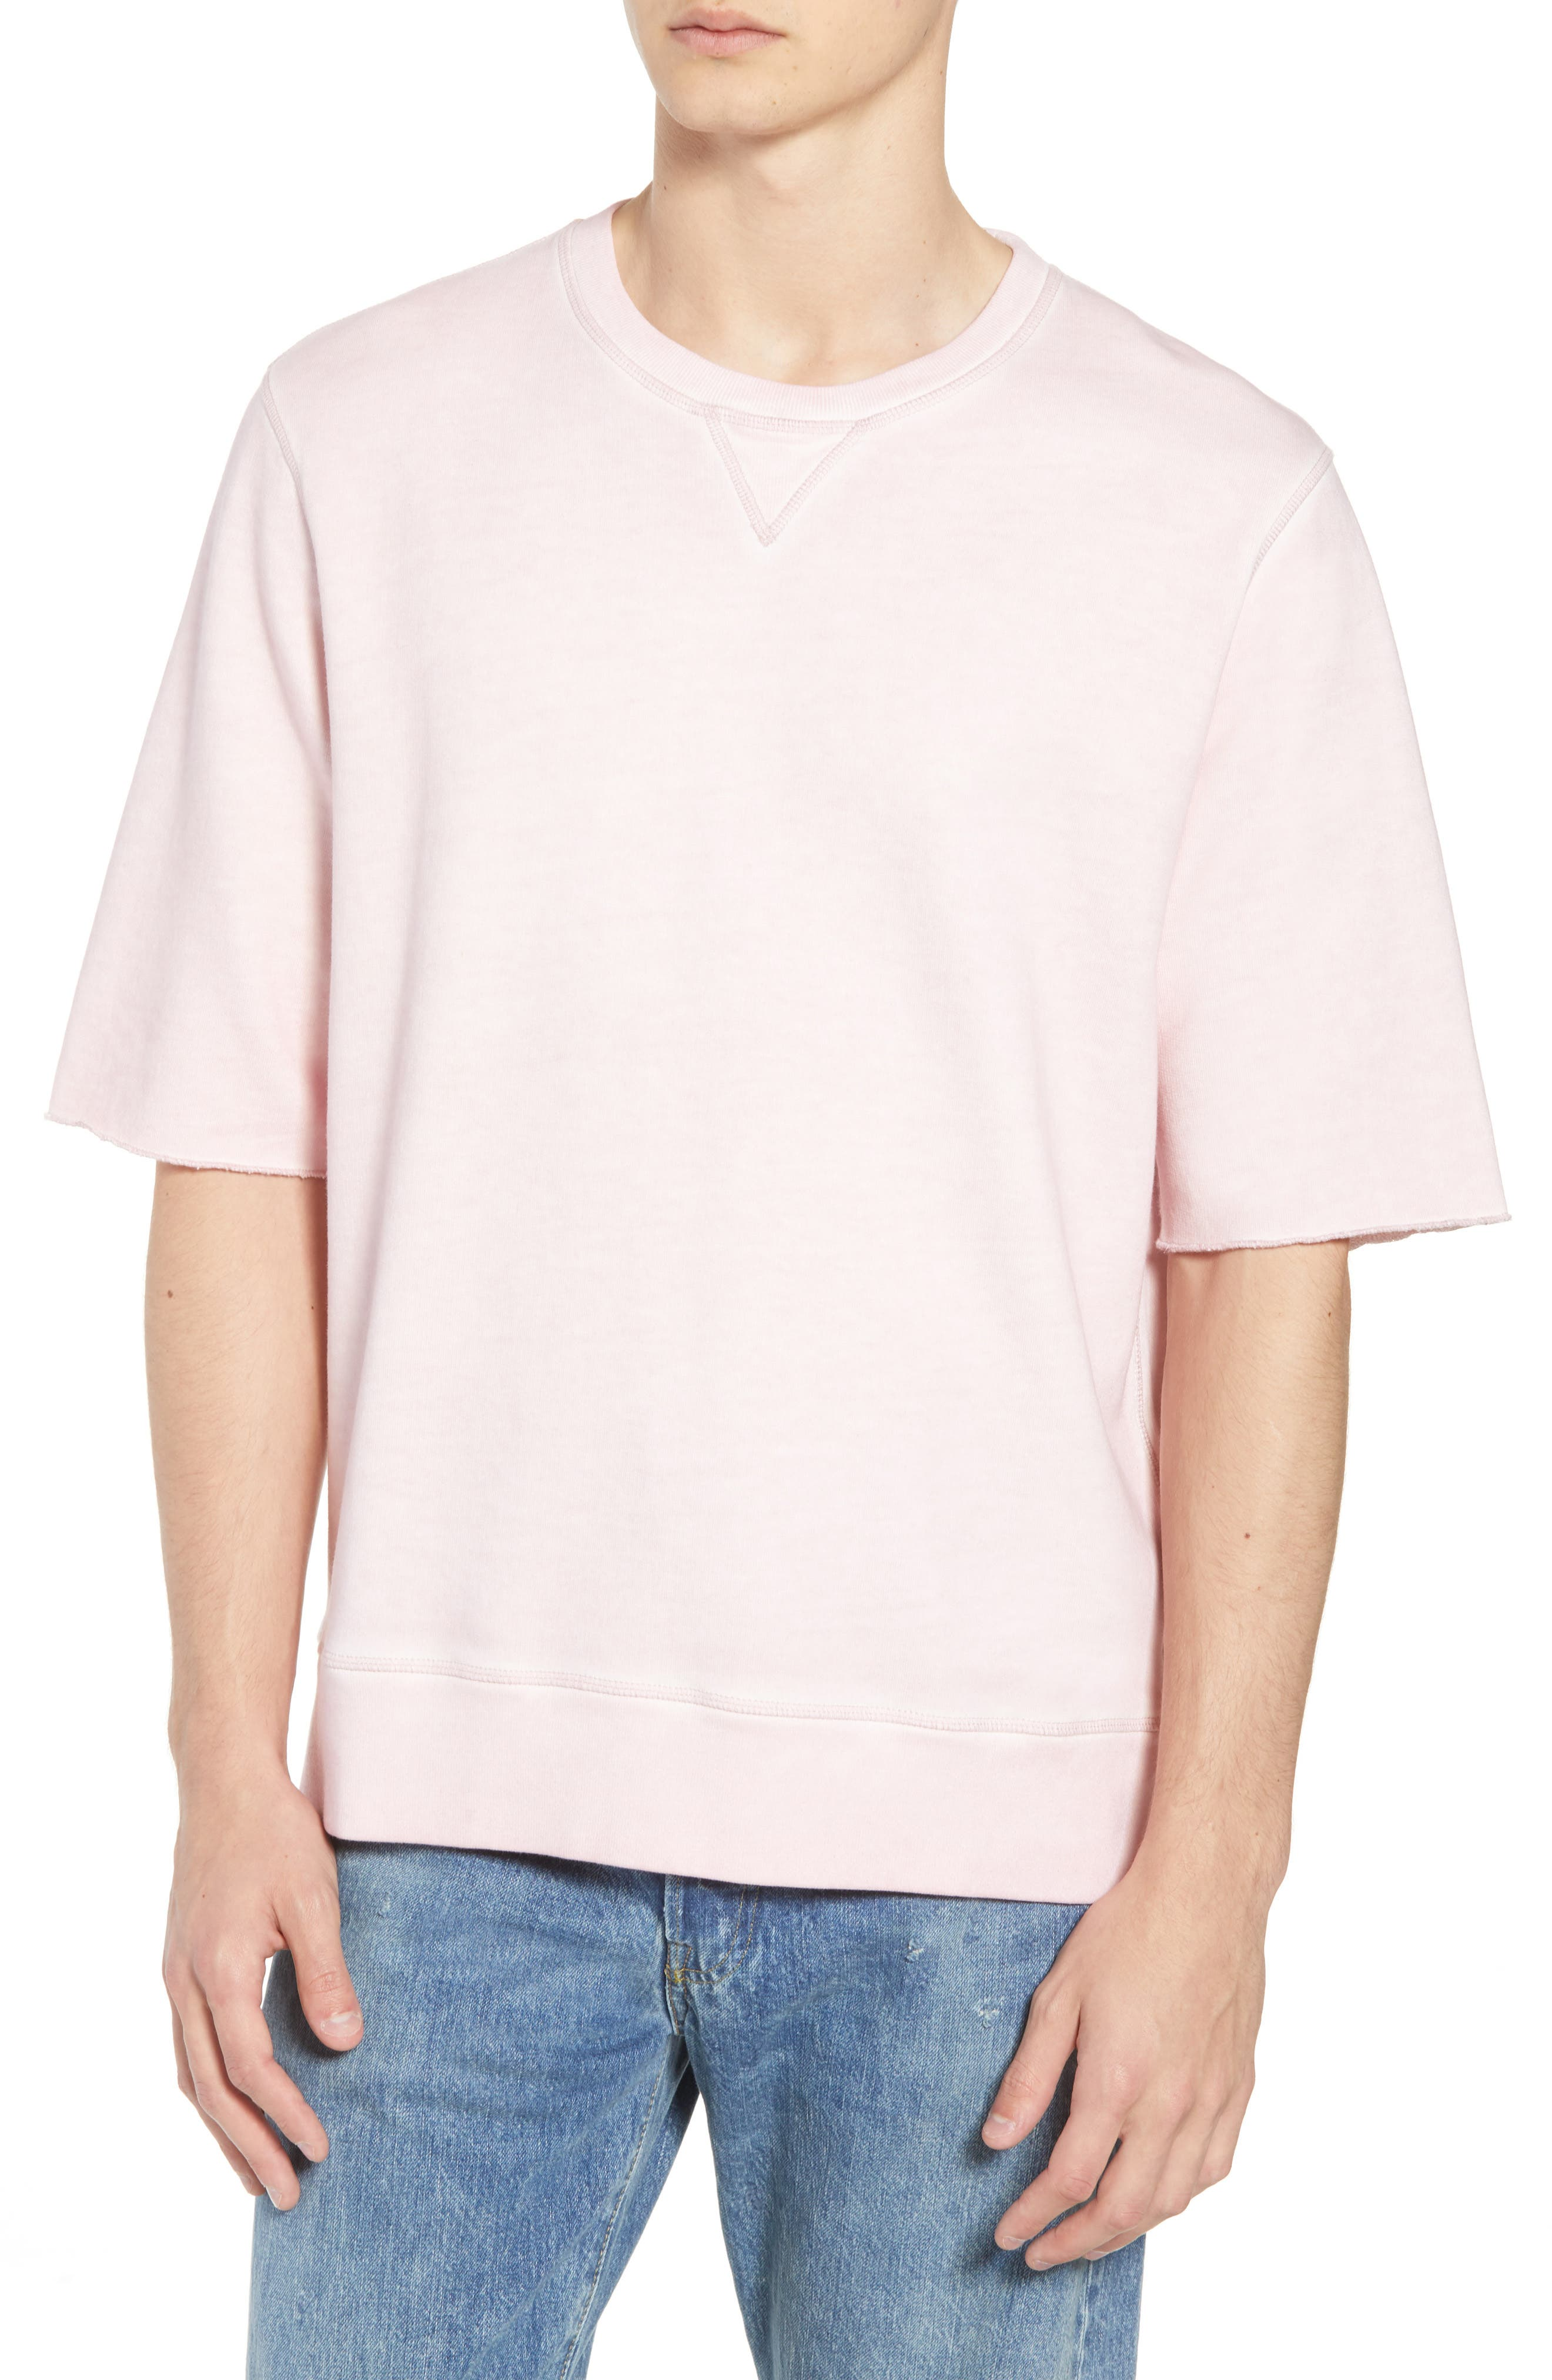 Levis'<sup>®</sup> Made & Crafted<sup>™</sup> Standard Fit T-Shirt,                         Main,                         color, 500